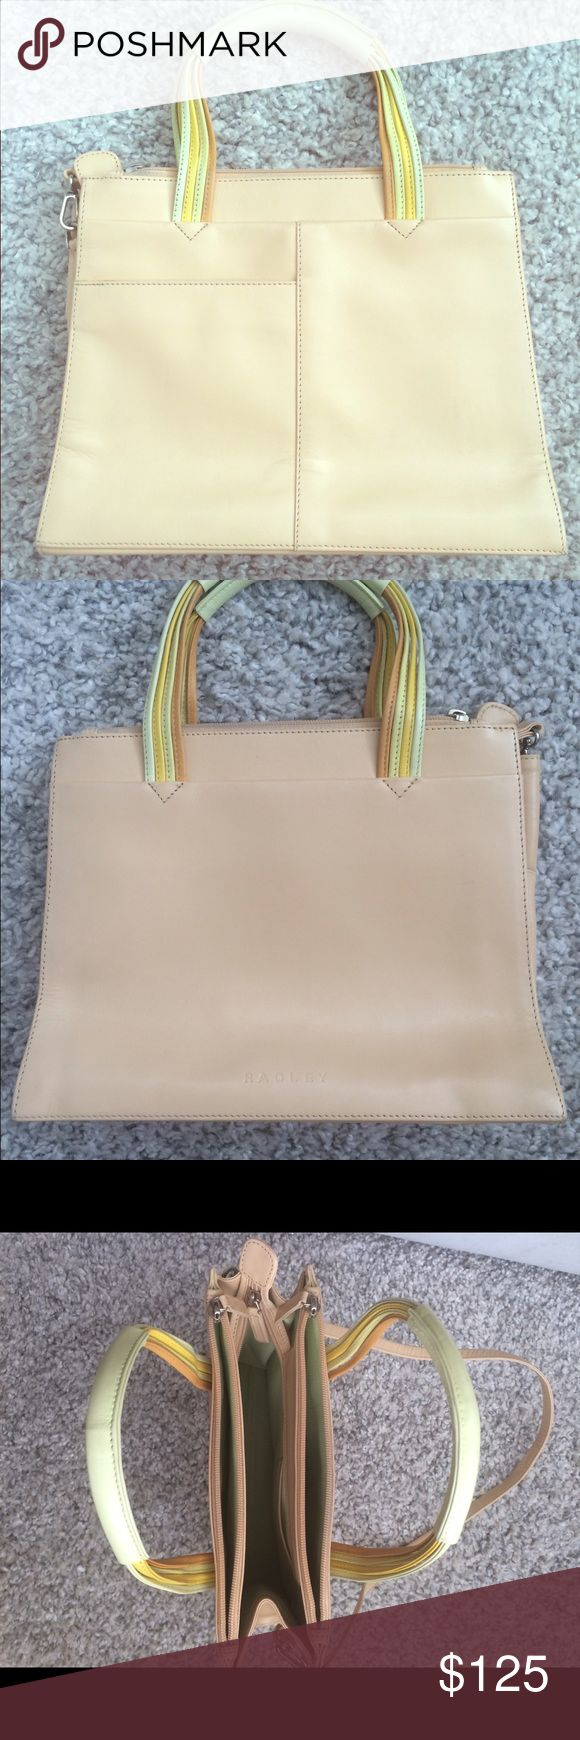 "Radley Clerkenwell handbag Own your own famous English designed handbag. Cream Radley handbag with multicolor orange, yellow and green handle. Can be used as a hand held bag, or there is a long strap for cross body/shoulder use. Bag measures approx 9"" high by 11"" wide. Bag has been used, but is on great condition. There is one small scratch (photo included). Radley Bags Shoulder Bags"